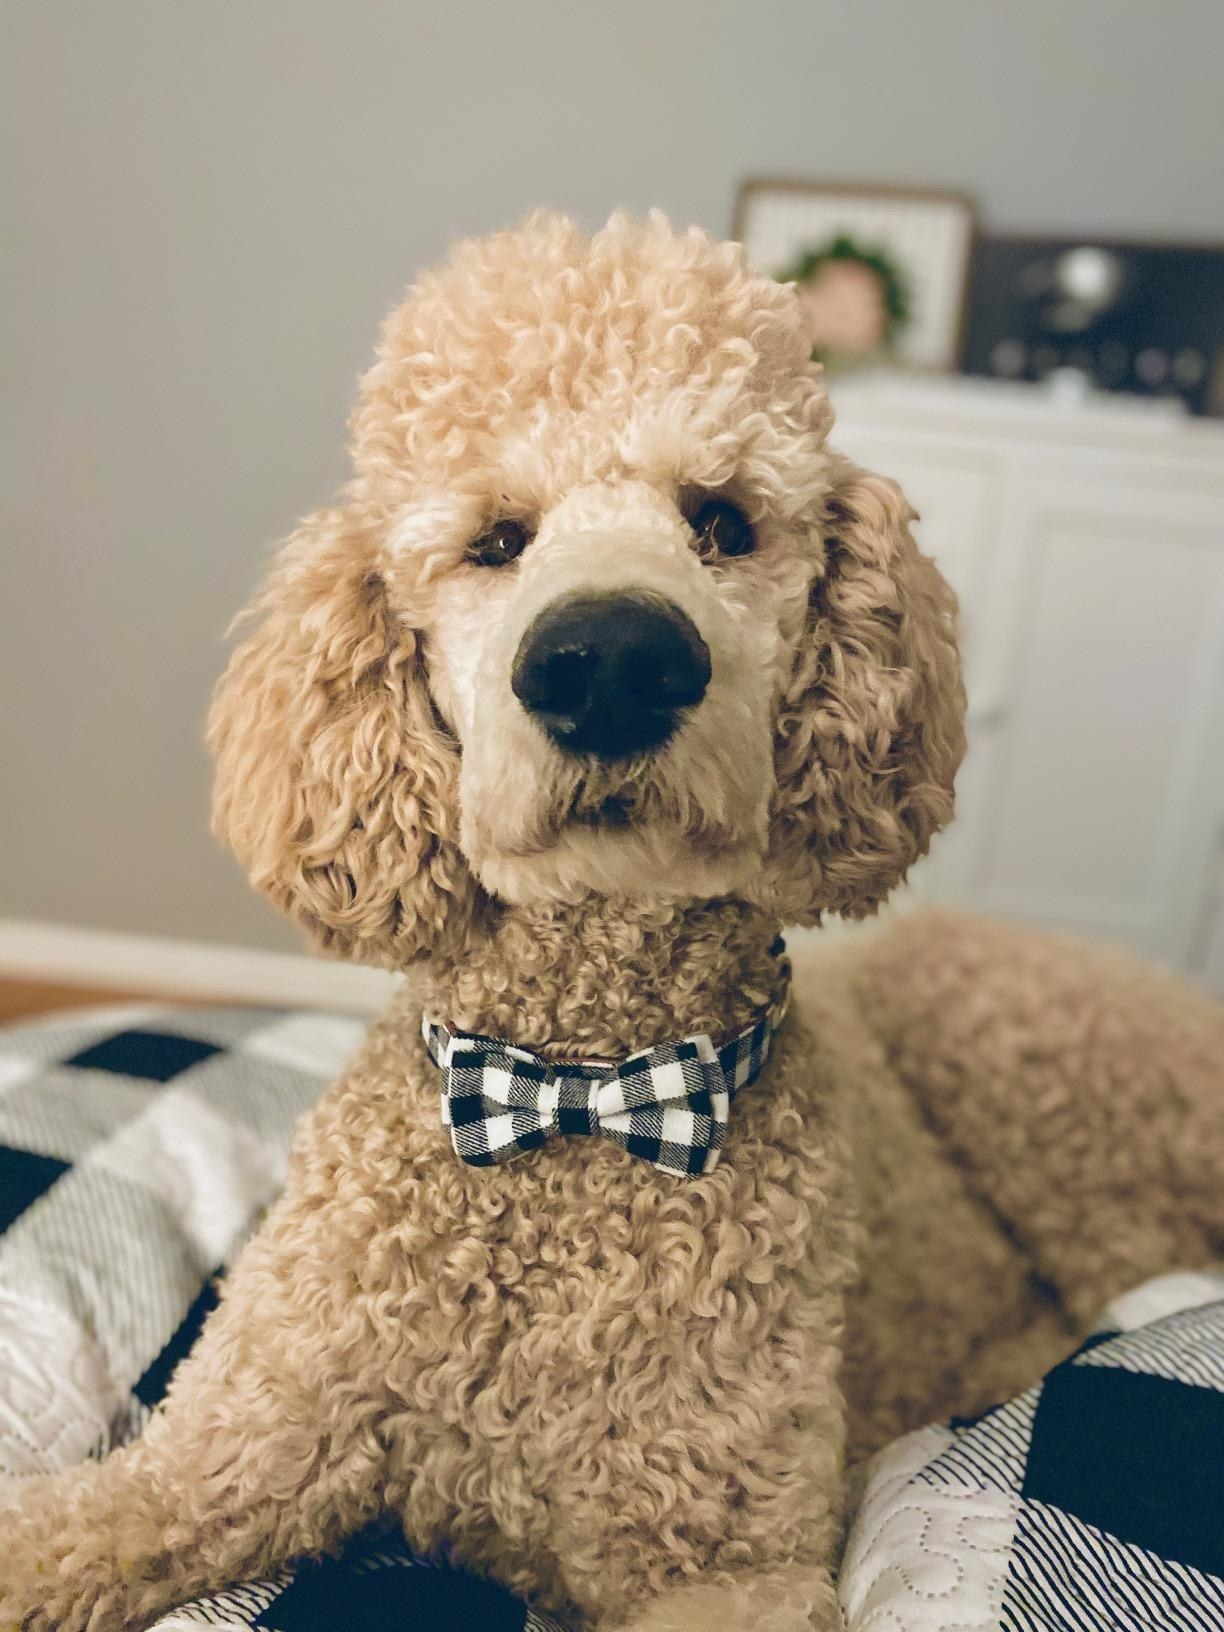 The bow tie in black and white check print